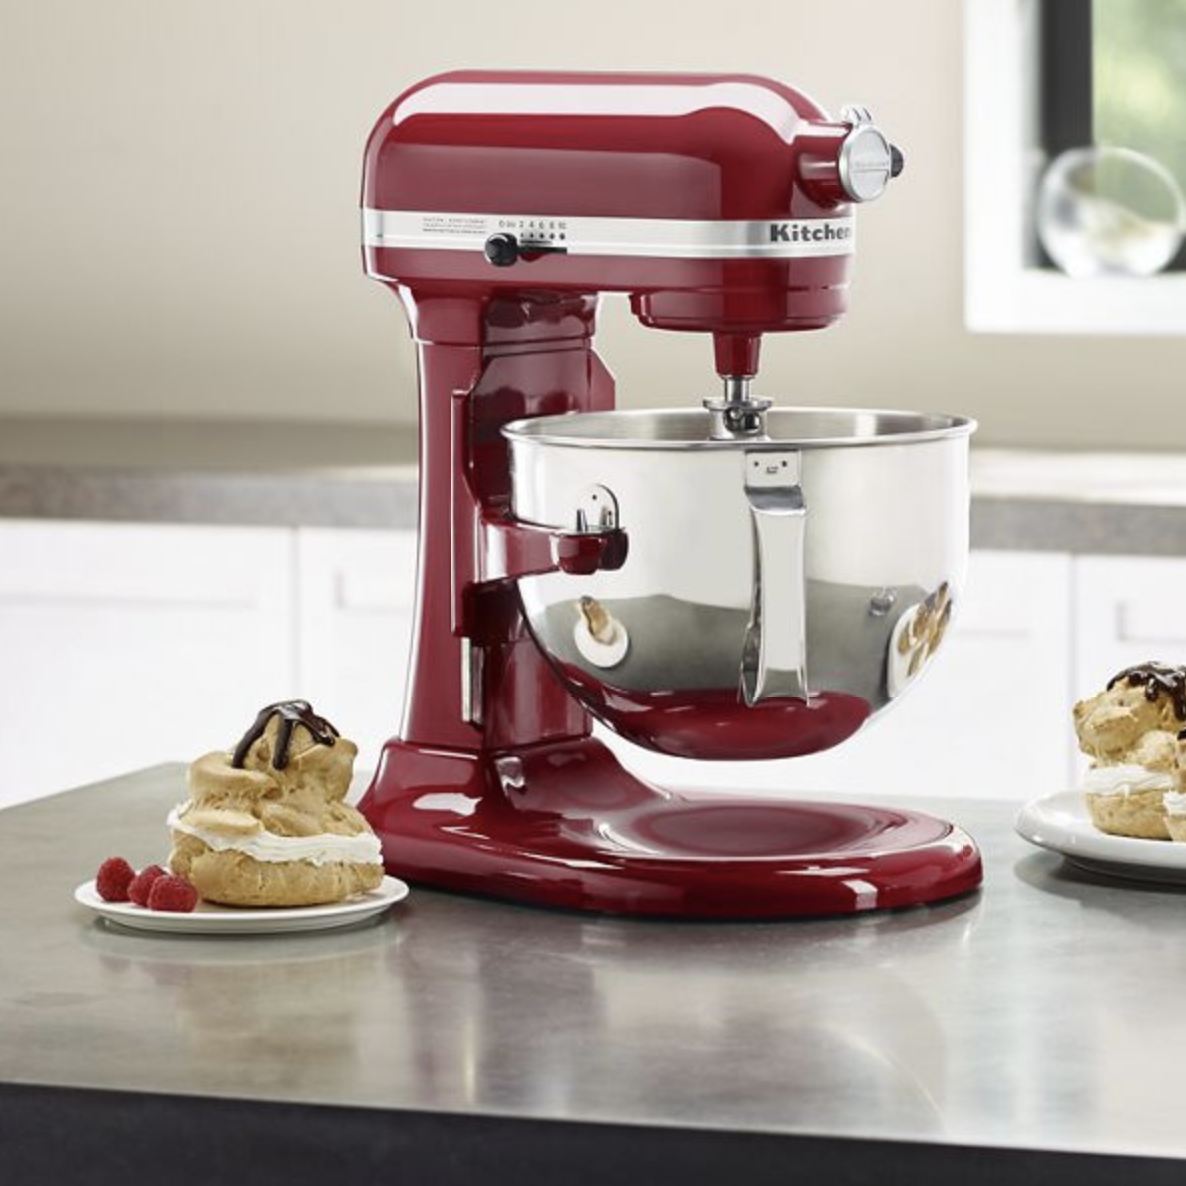 Make your KitchenAid dreams come true with this sale.